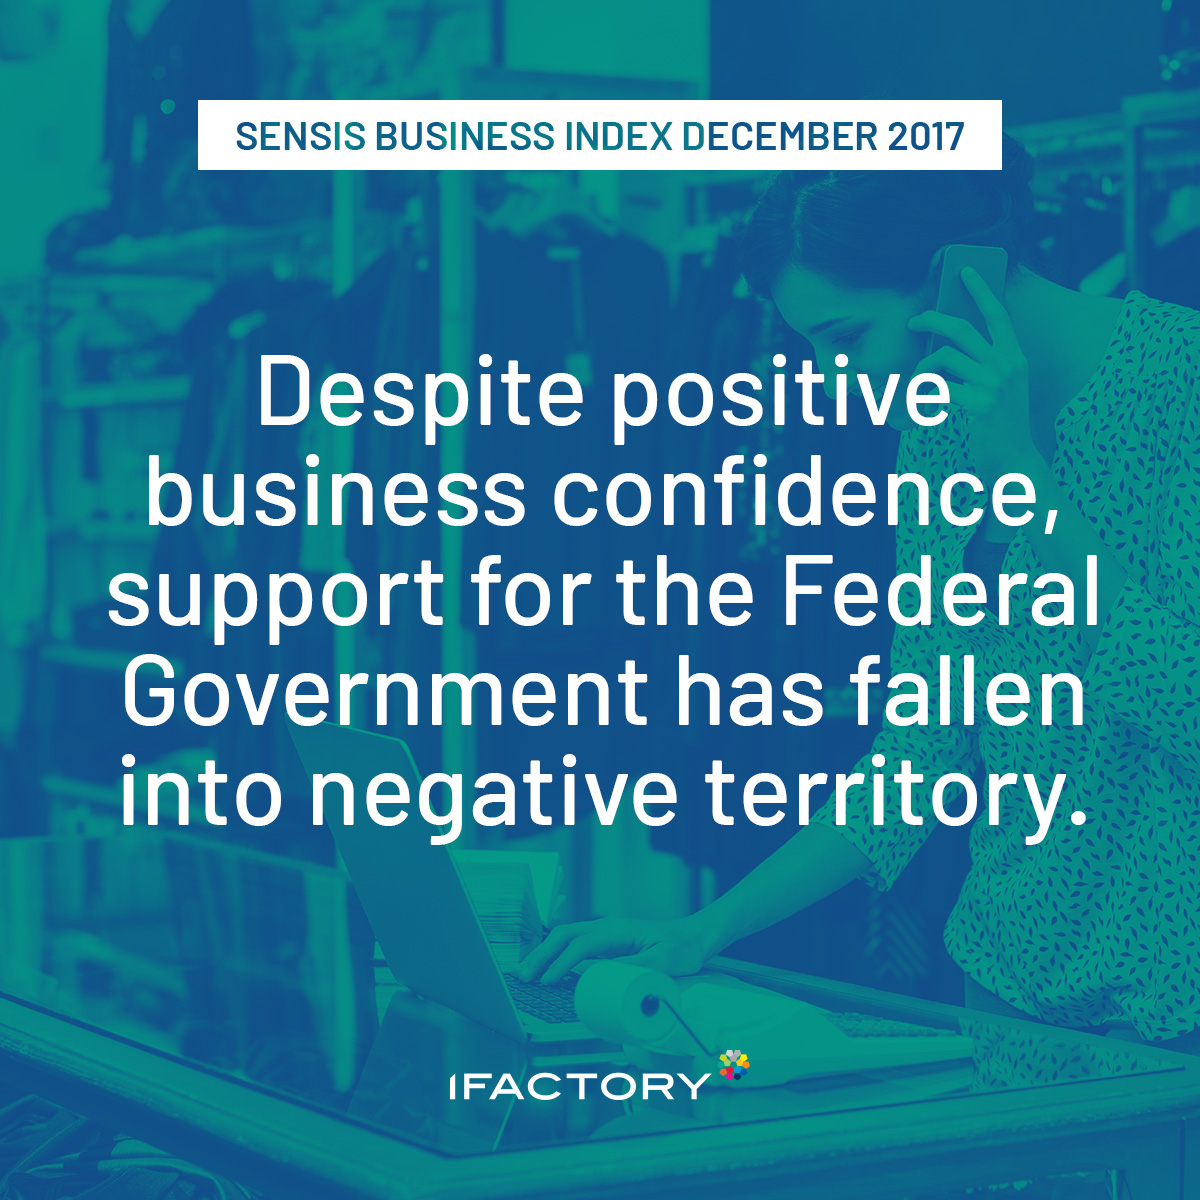 Despite-positive-business-confidence%2C-support-for-the-Federal-Government-has-fallen-into-negative-territory